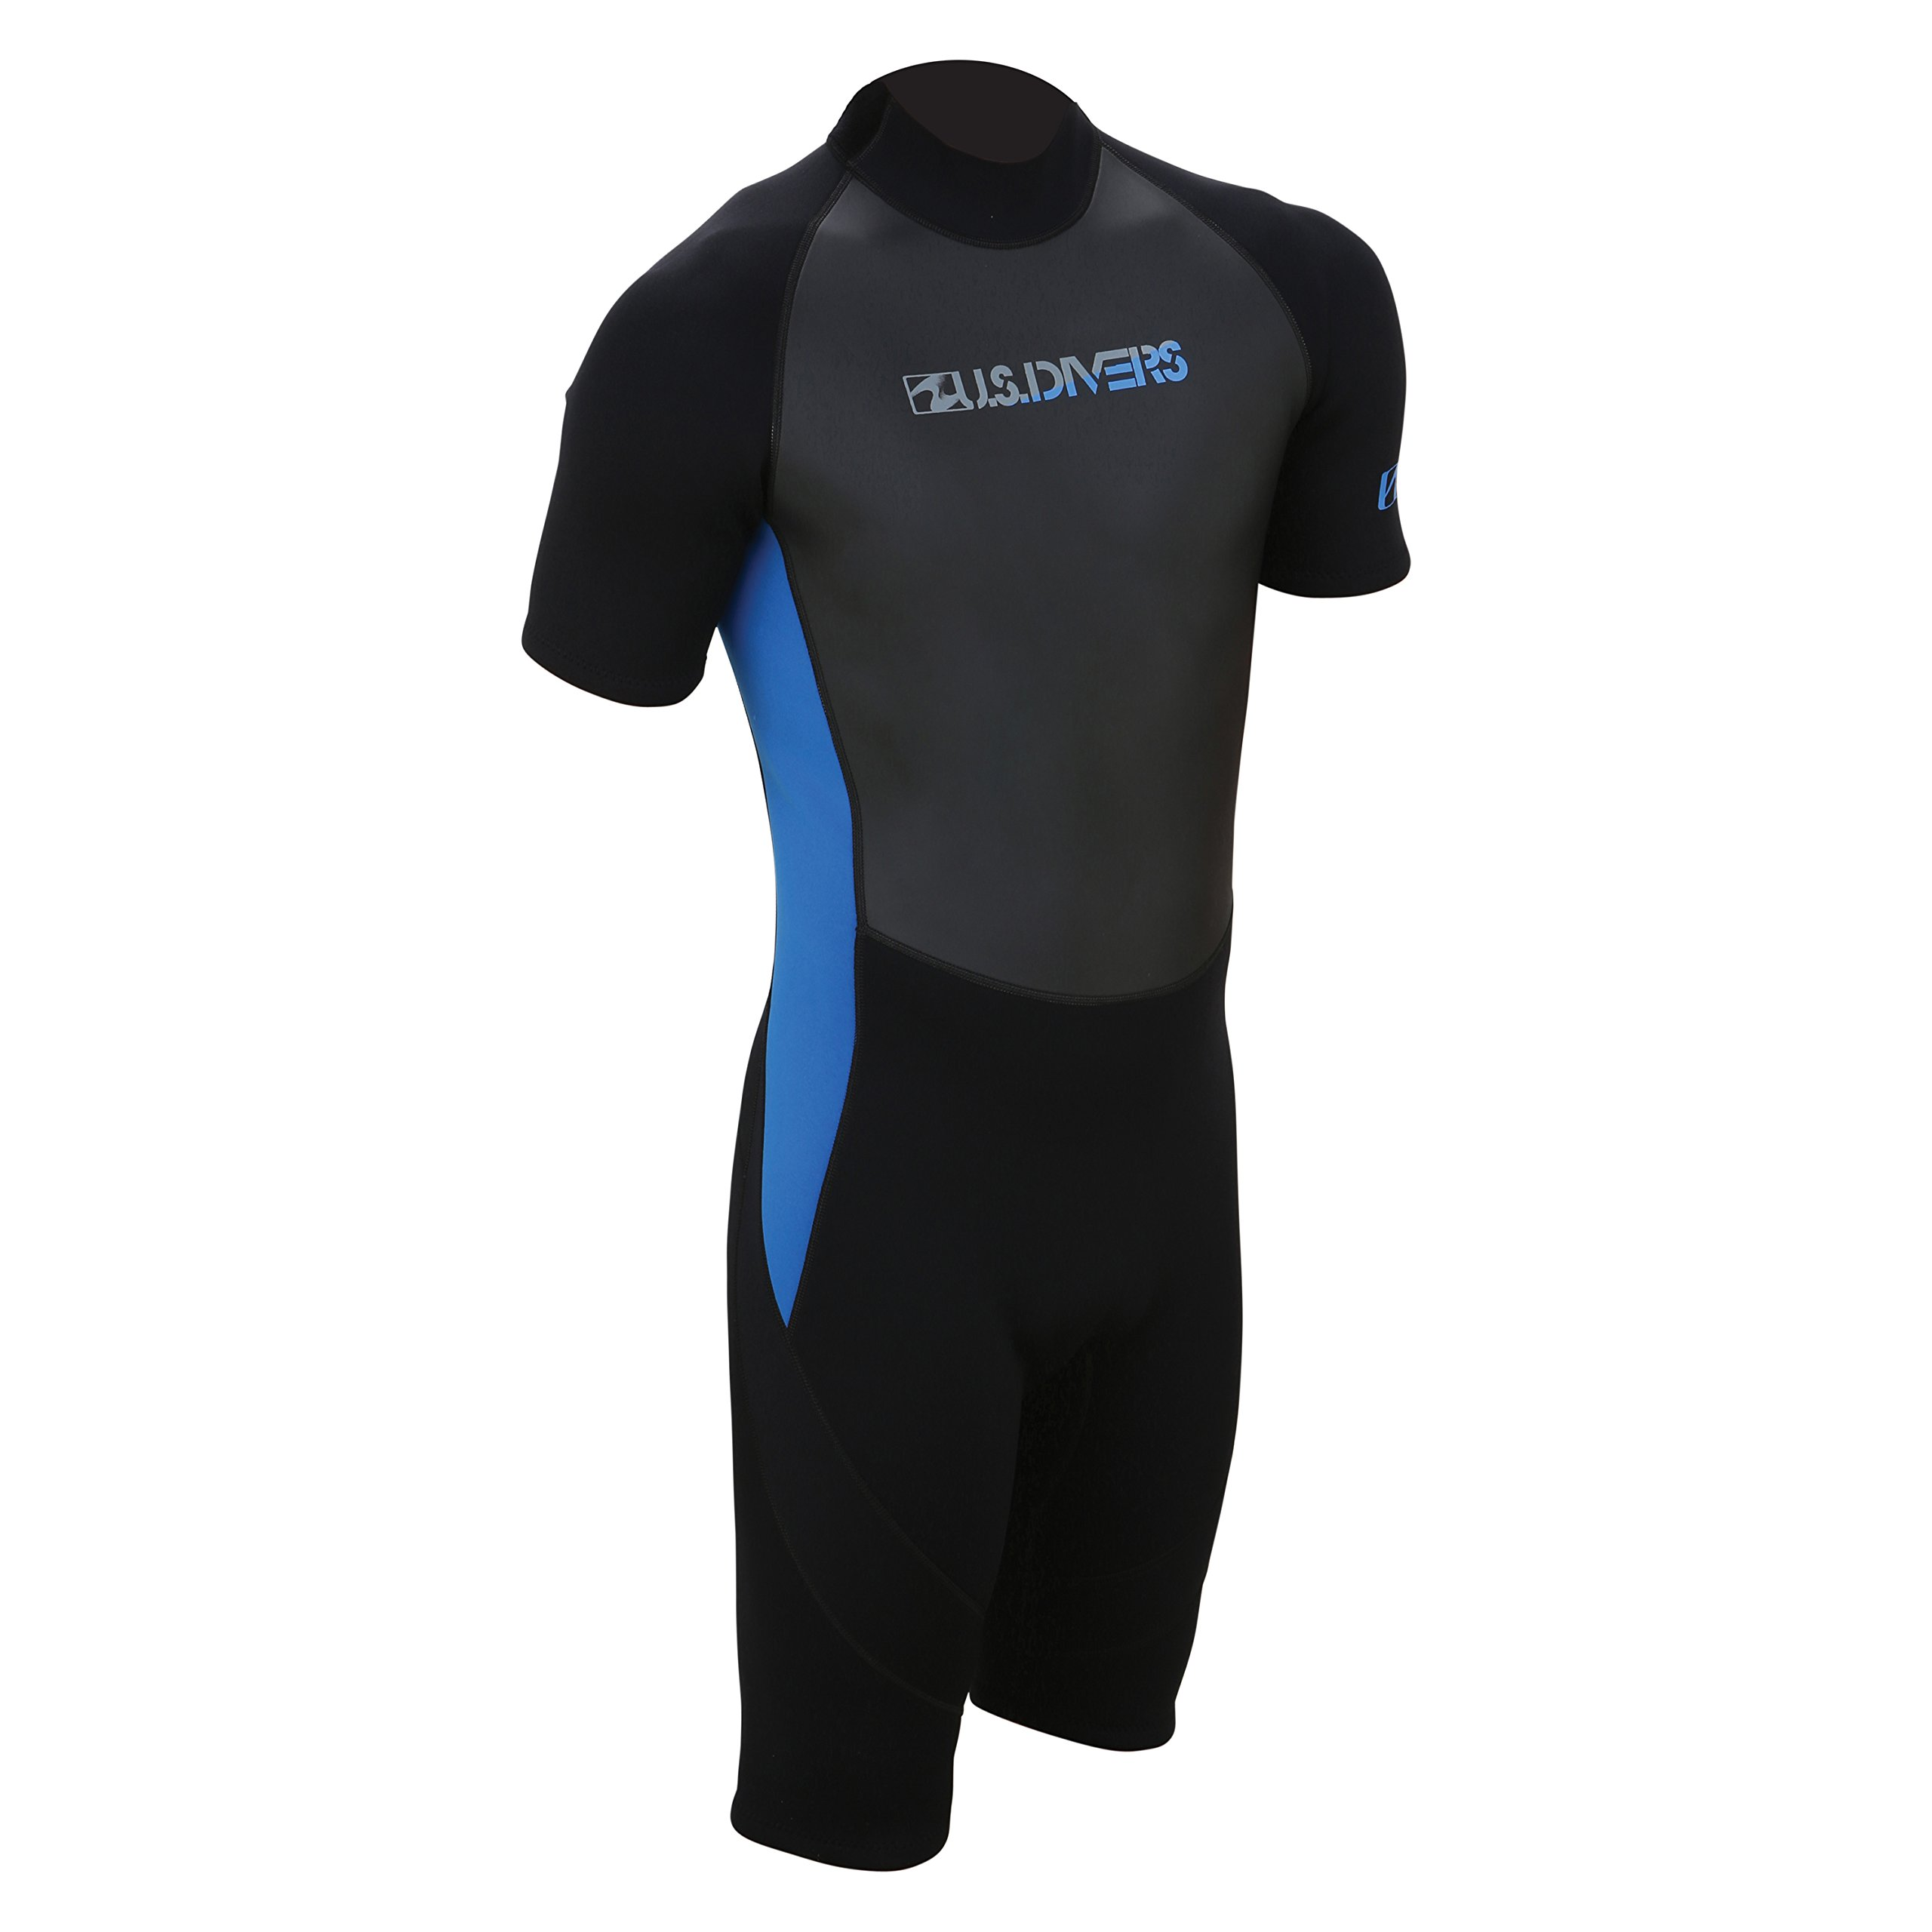 U.S. Divers Adult 2015 Shorty Wetsuit, Black/Blue, Small